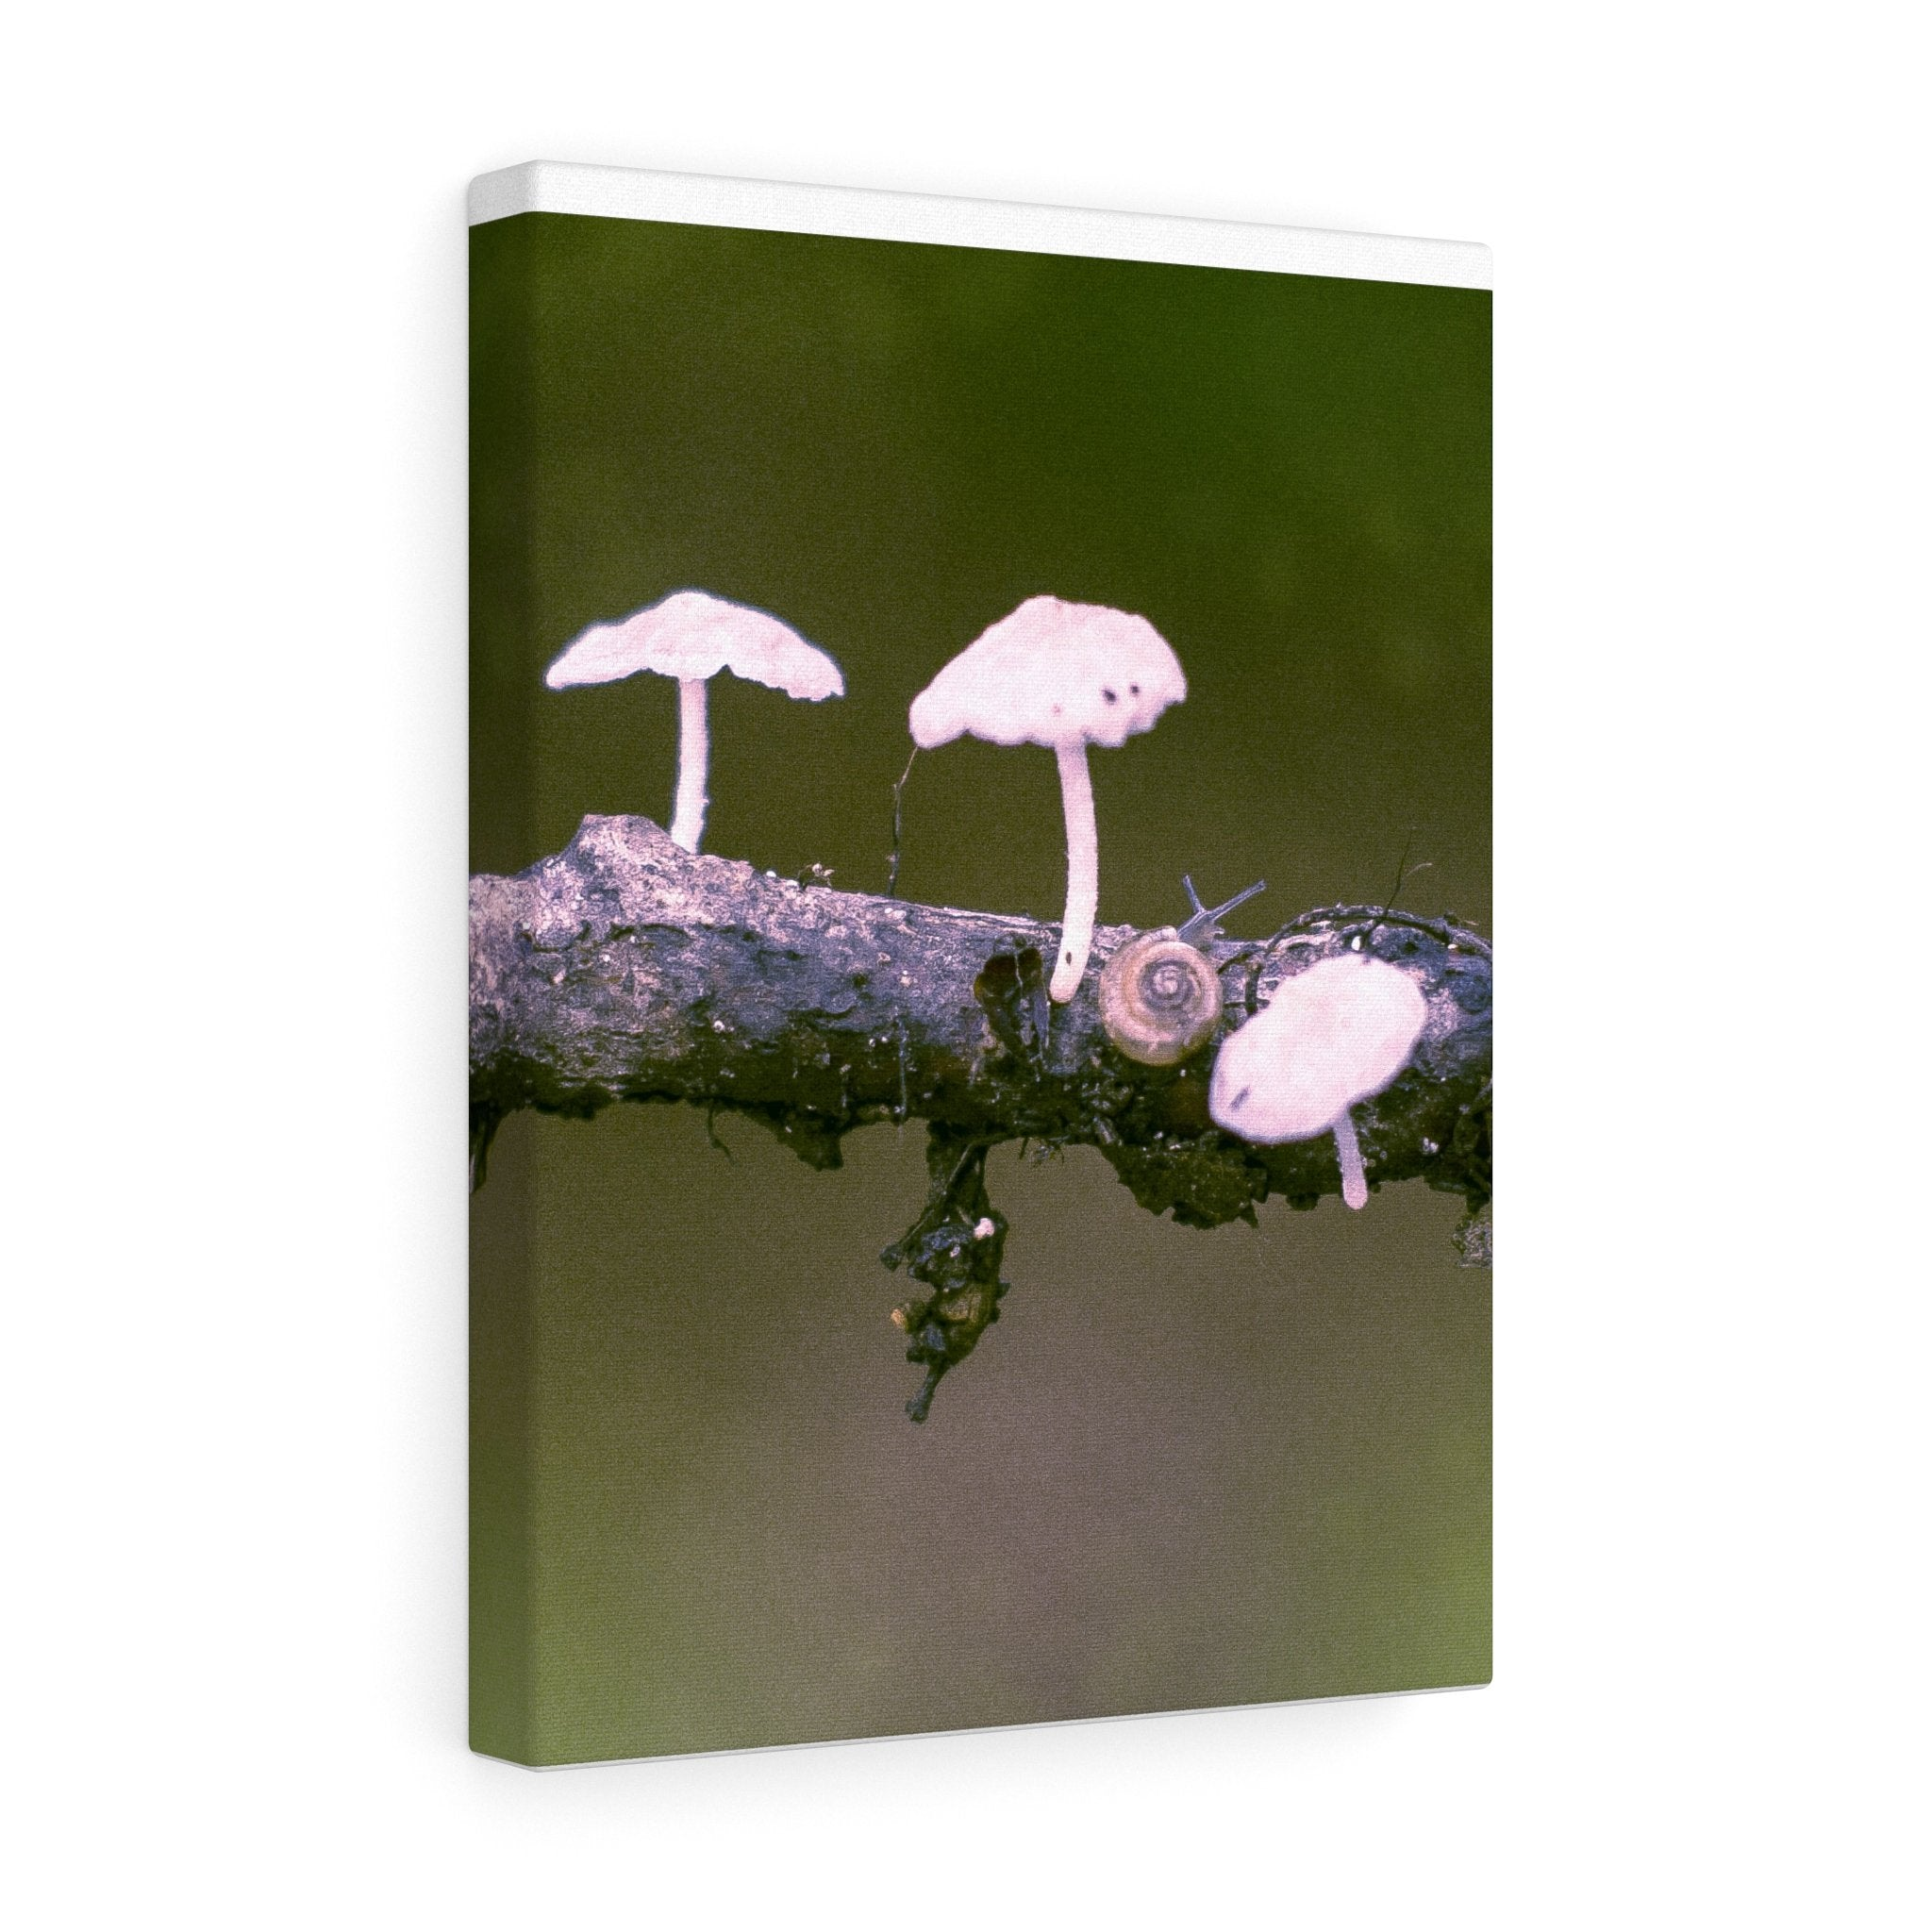 Snail on a Log Stretched canvas 12″ × 16″ / Stretched Canvas (1.5